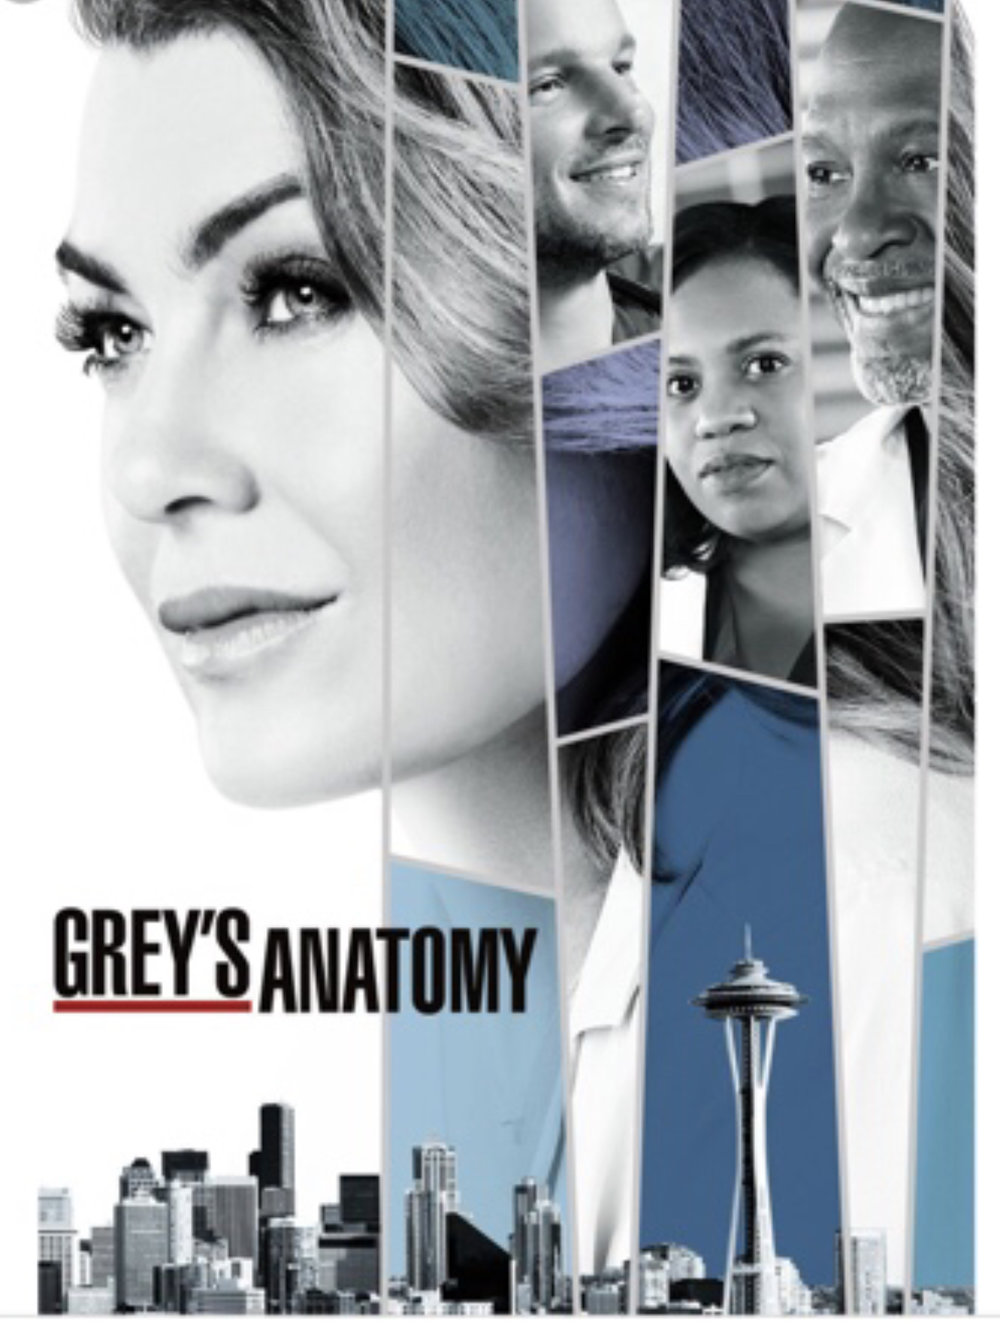 After I rented season one in 2010 during a blizzard, I cried like a baby and tossed this miserable series to the side. Perhaps the wound of my brother's passing was still too fresh, but five years after his passing still made the watching of Grey's Anatomy too sad. But when 2016 came, I was determined to give it another go and boy I'm glad I did. No tears. Just hot tea and Grey's and I'm happy.